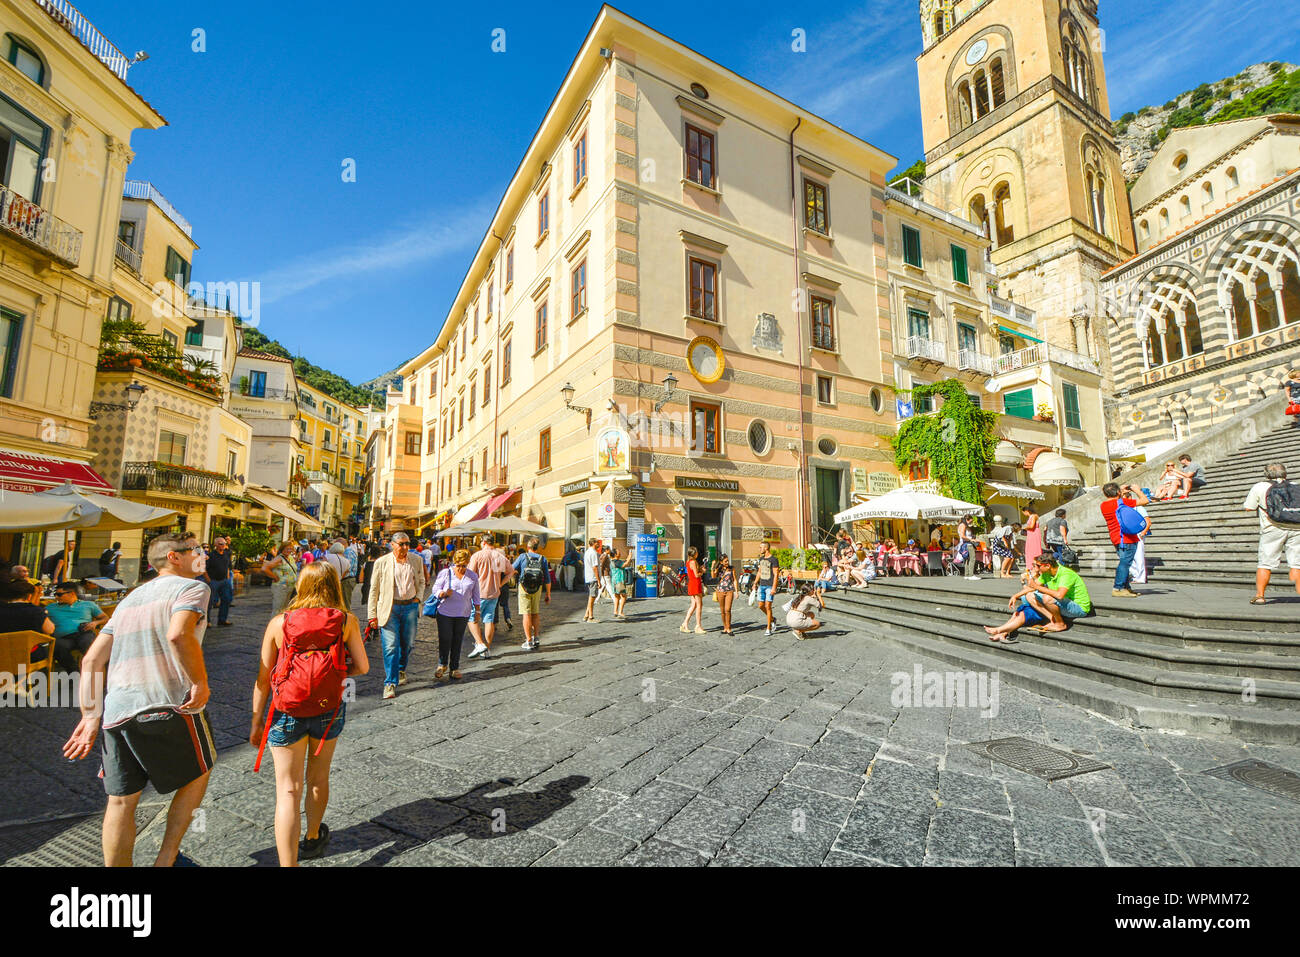 The center of the town of Amalfi on the Amalfi Coast of Italy with the stairs leading up to the famous Amalfi Cathedral as tourists shop and dine Stock Photo